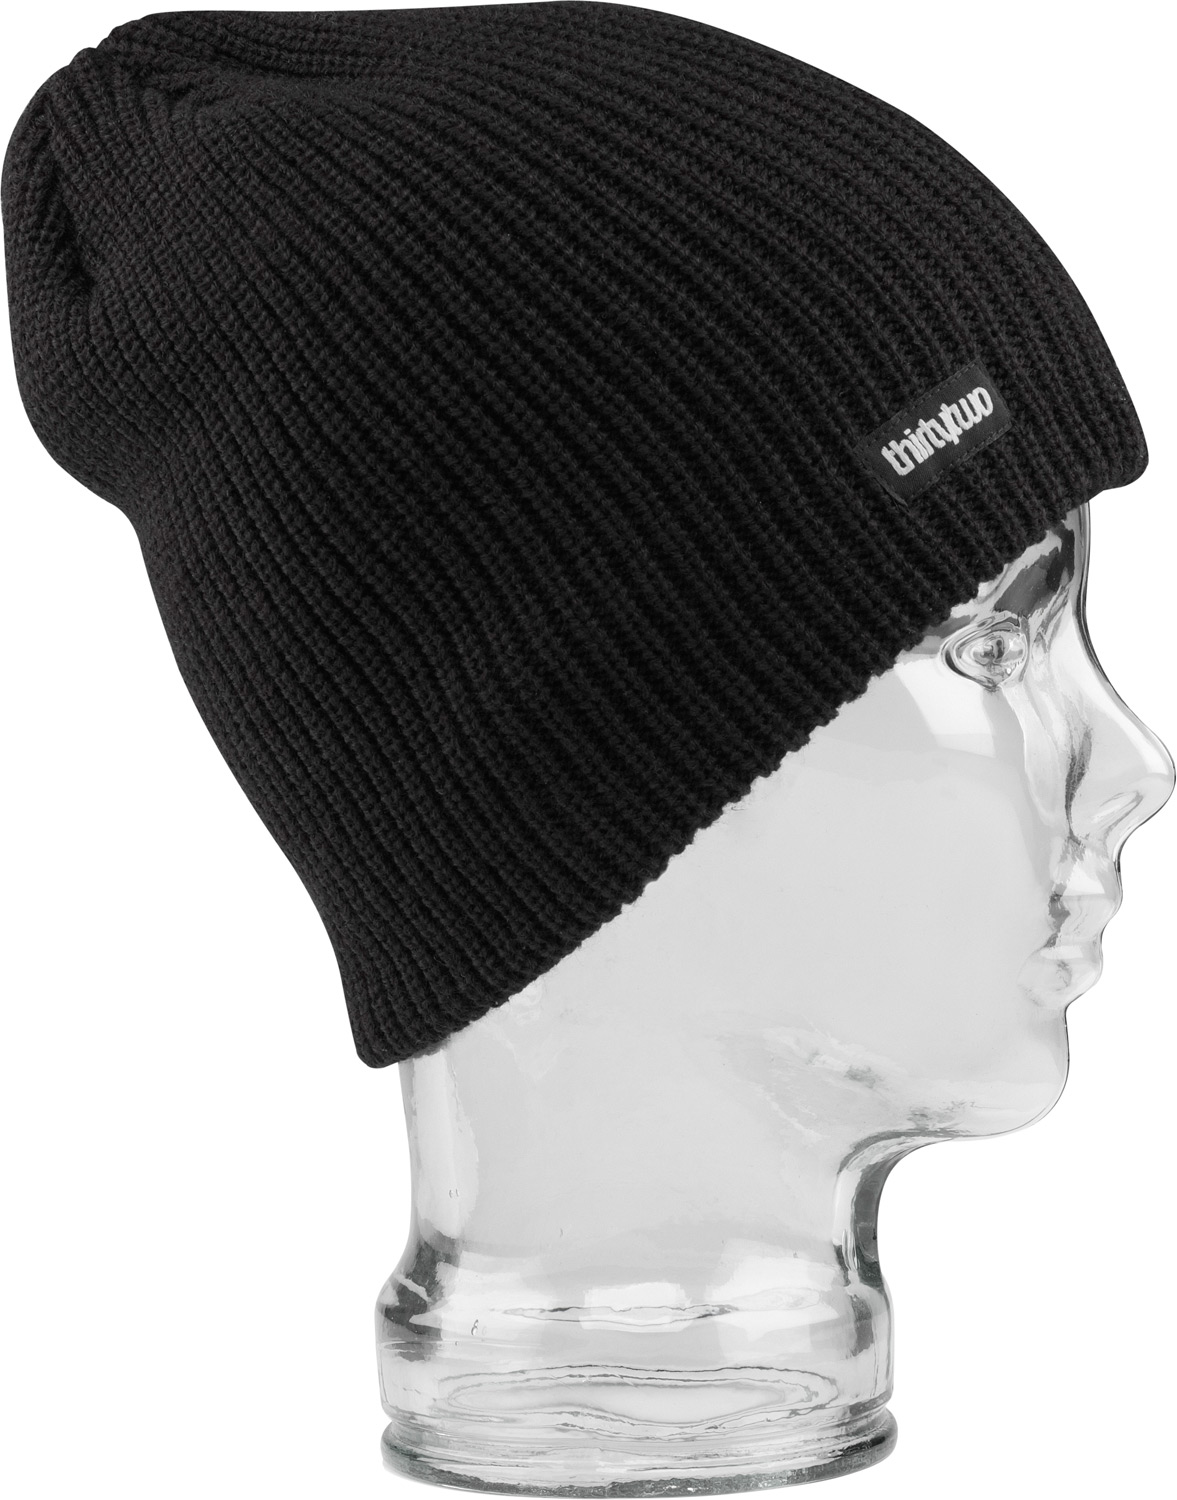 Key Features of the 32 - Thirty Two Standard Beanie: 100% acrylic solid color sag beanie with woven label - $19.95